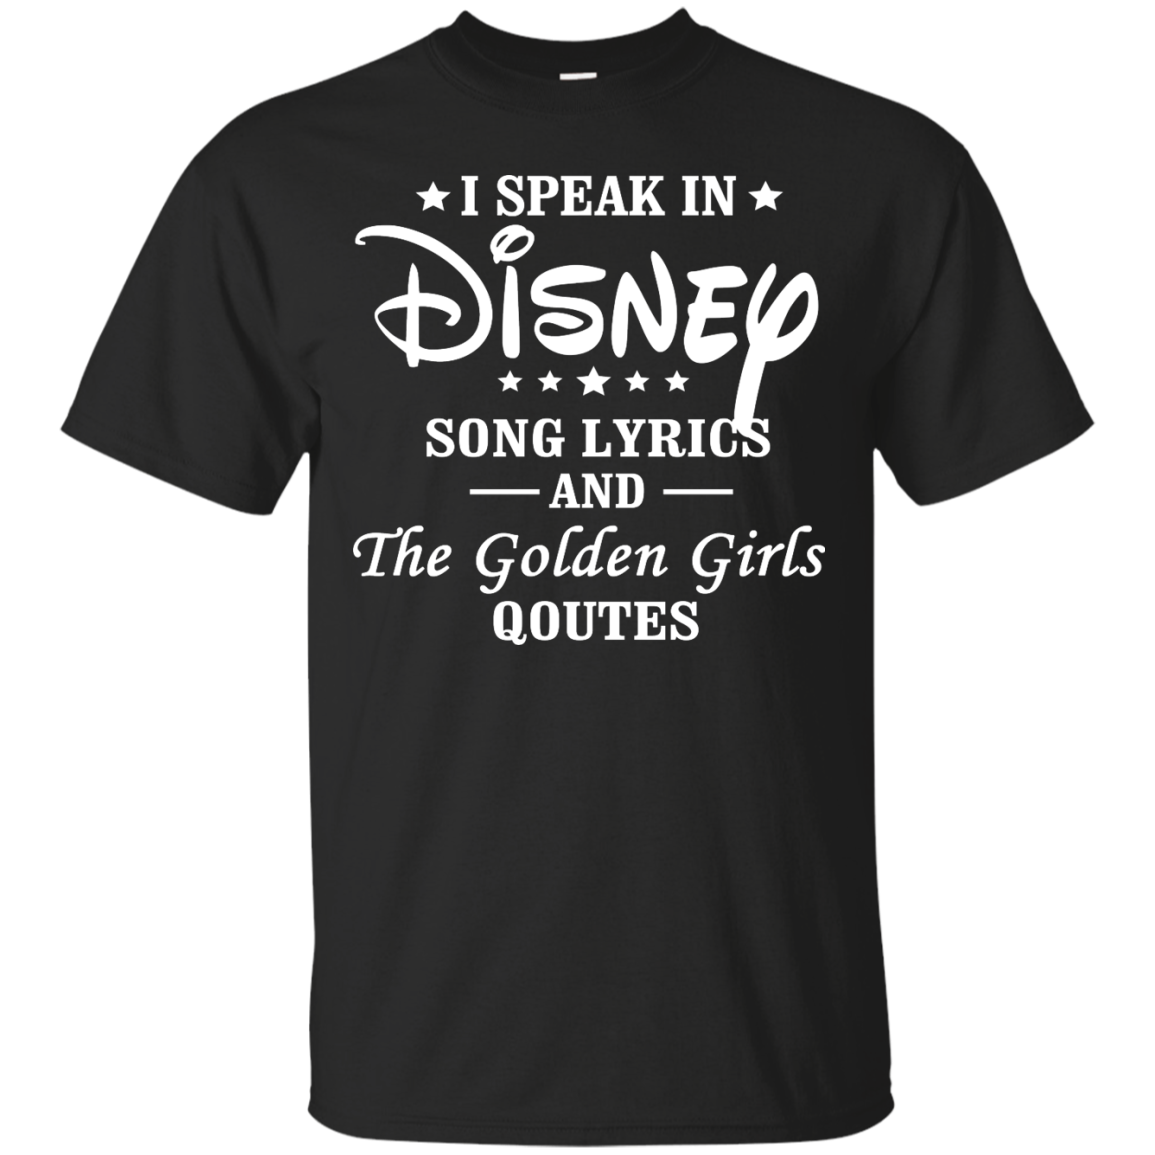 I Speak In Disney Song Lyrics And The Golden Girls Quotes shirt sold by iFrogtees   Shirts with sayings, Gilmore girls quotes, Greys anatomy